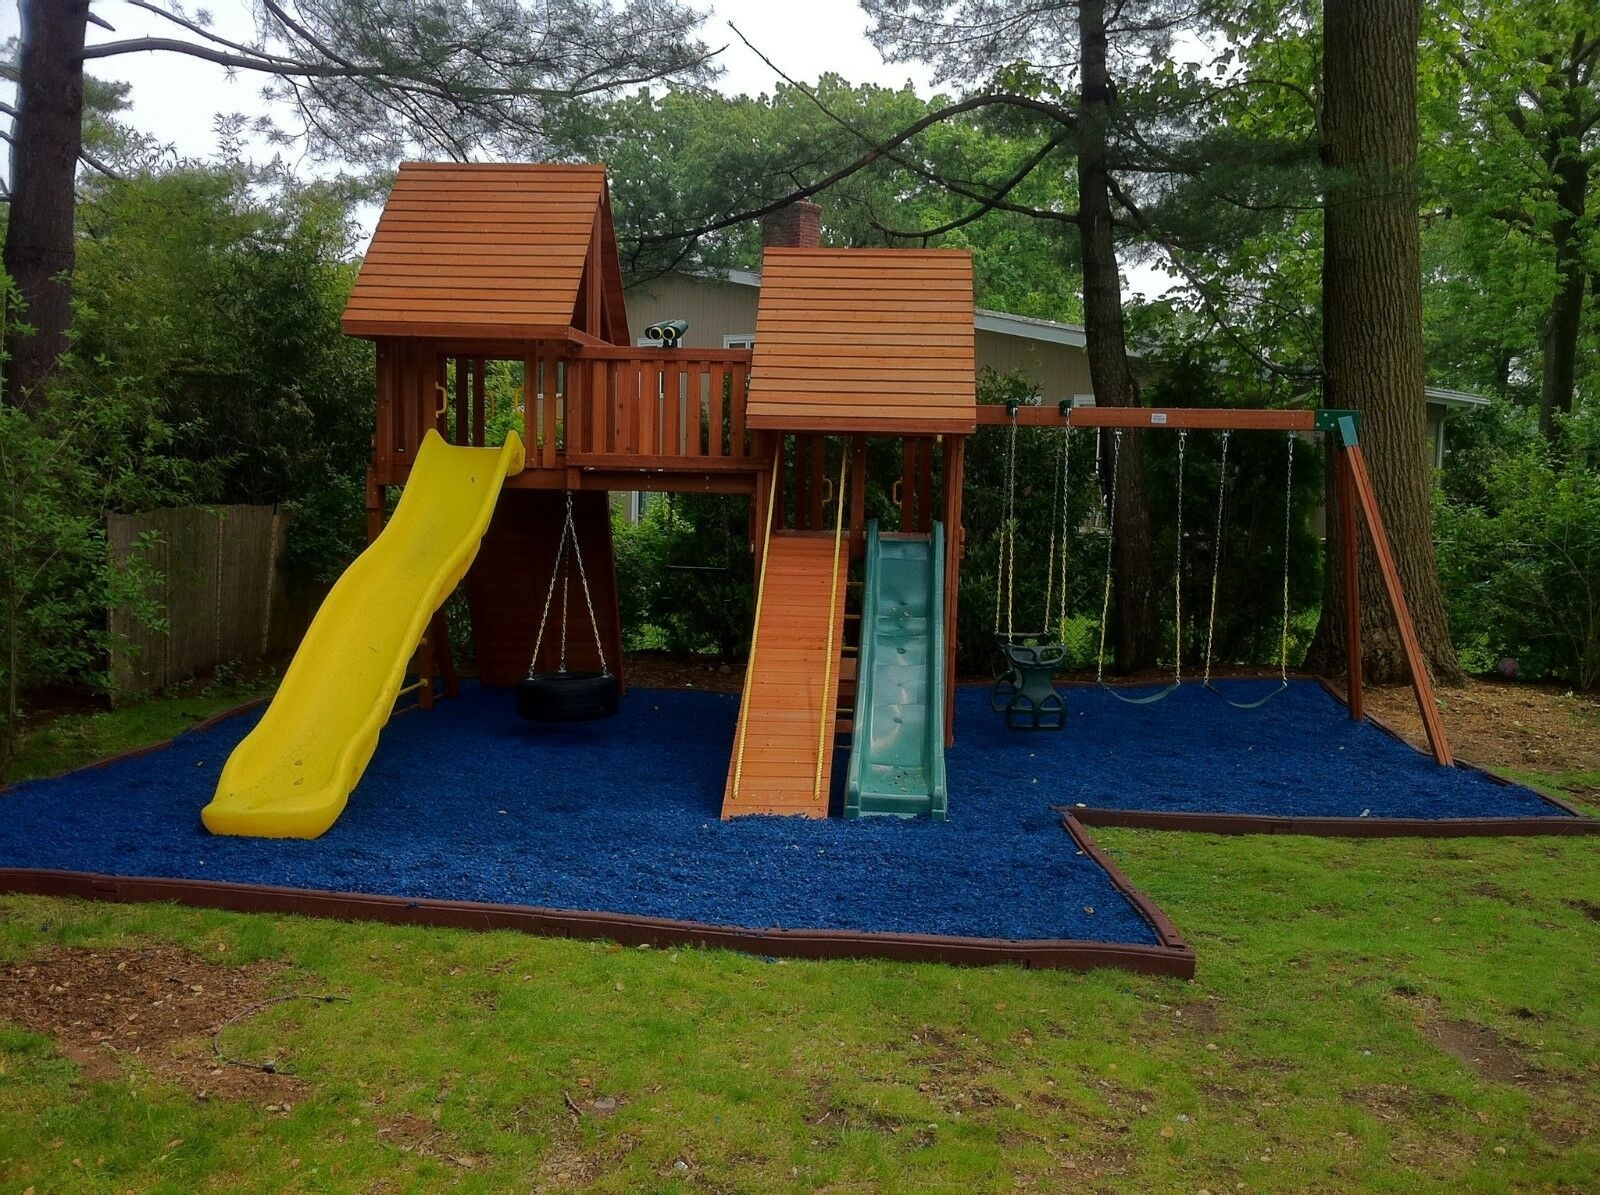 1 1 1 Full Pallet of Playsafer Playground Rubber Mulch blueE a74c9b